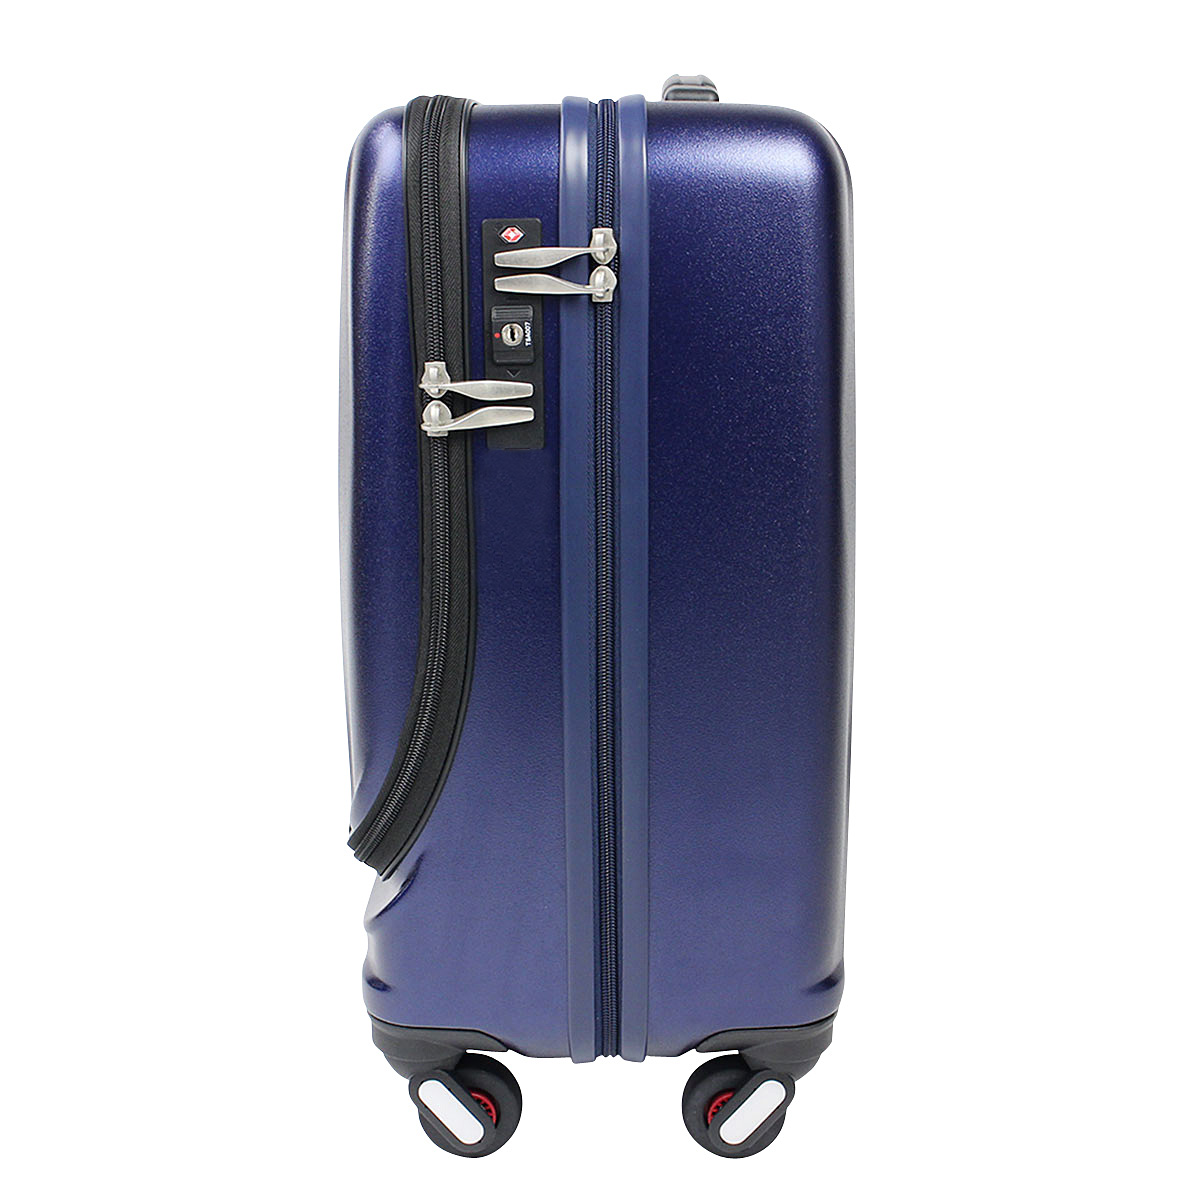 Lightweight Cabin Luggage Suitcase Frequenter Clam Front Open Suitcase Cabin Brought 34 L Lightweight S Size Bag Tsa Lock Approximately 1 2 Night Four Wheeled Zipper Carrying